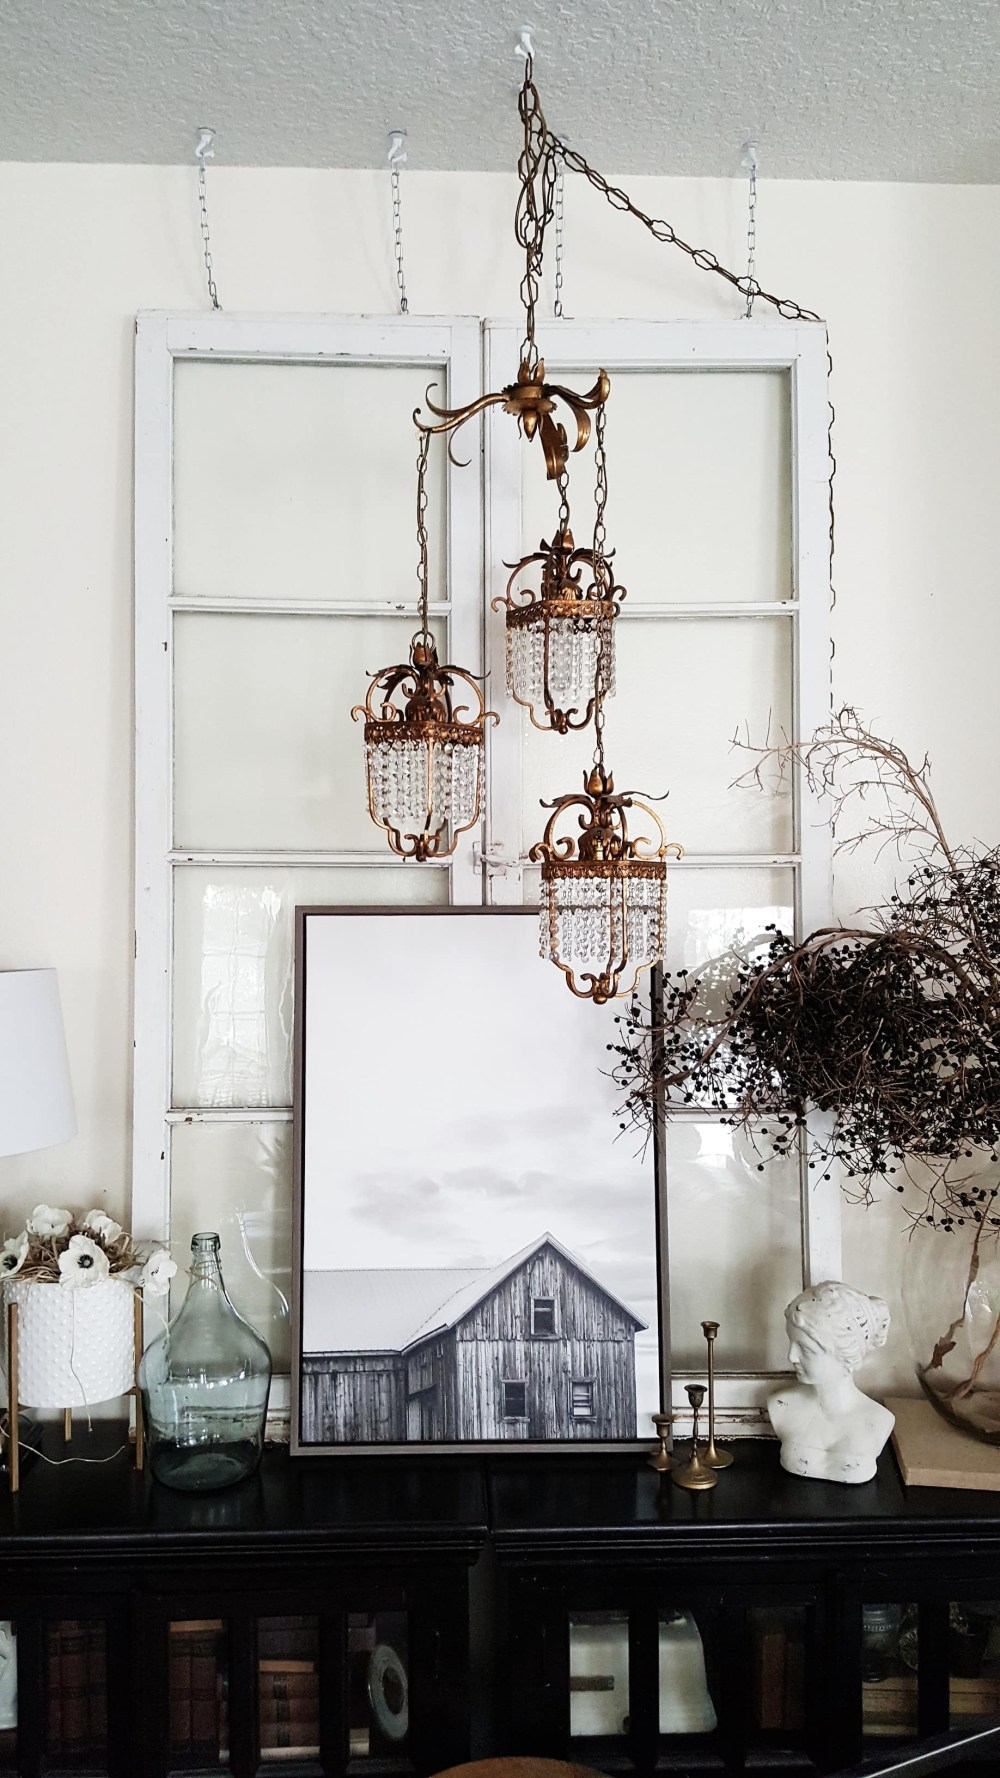 Modern Farmhouse Eclectic Industrial Decor Design Vintage Doors Chandelier Antiques Rugs Living Room Inspiration Black and White Scandinavian Decor Decorating ideas Fall Winter